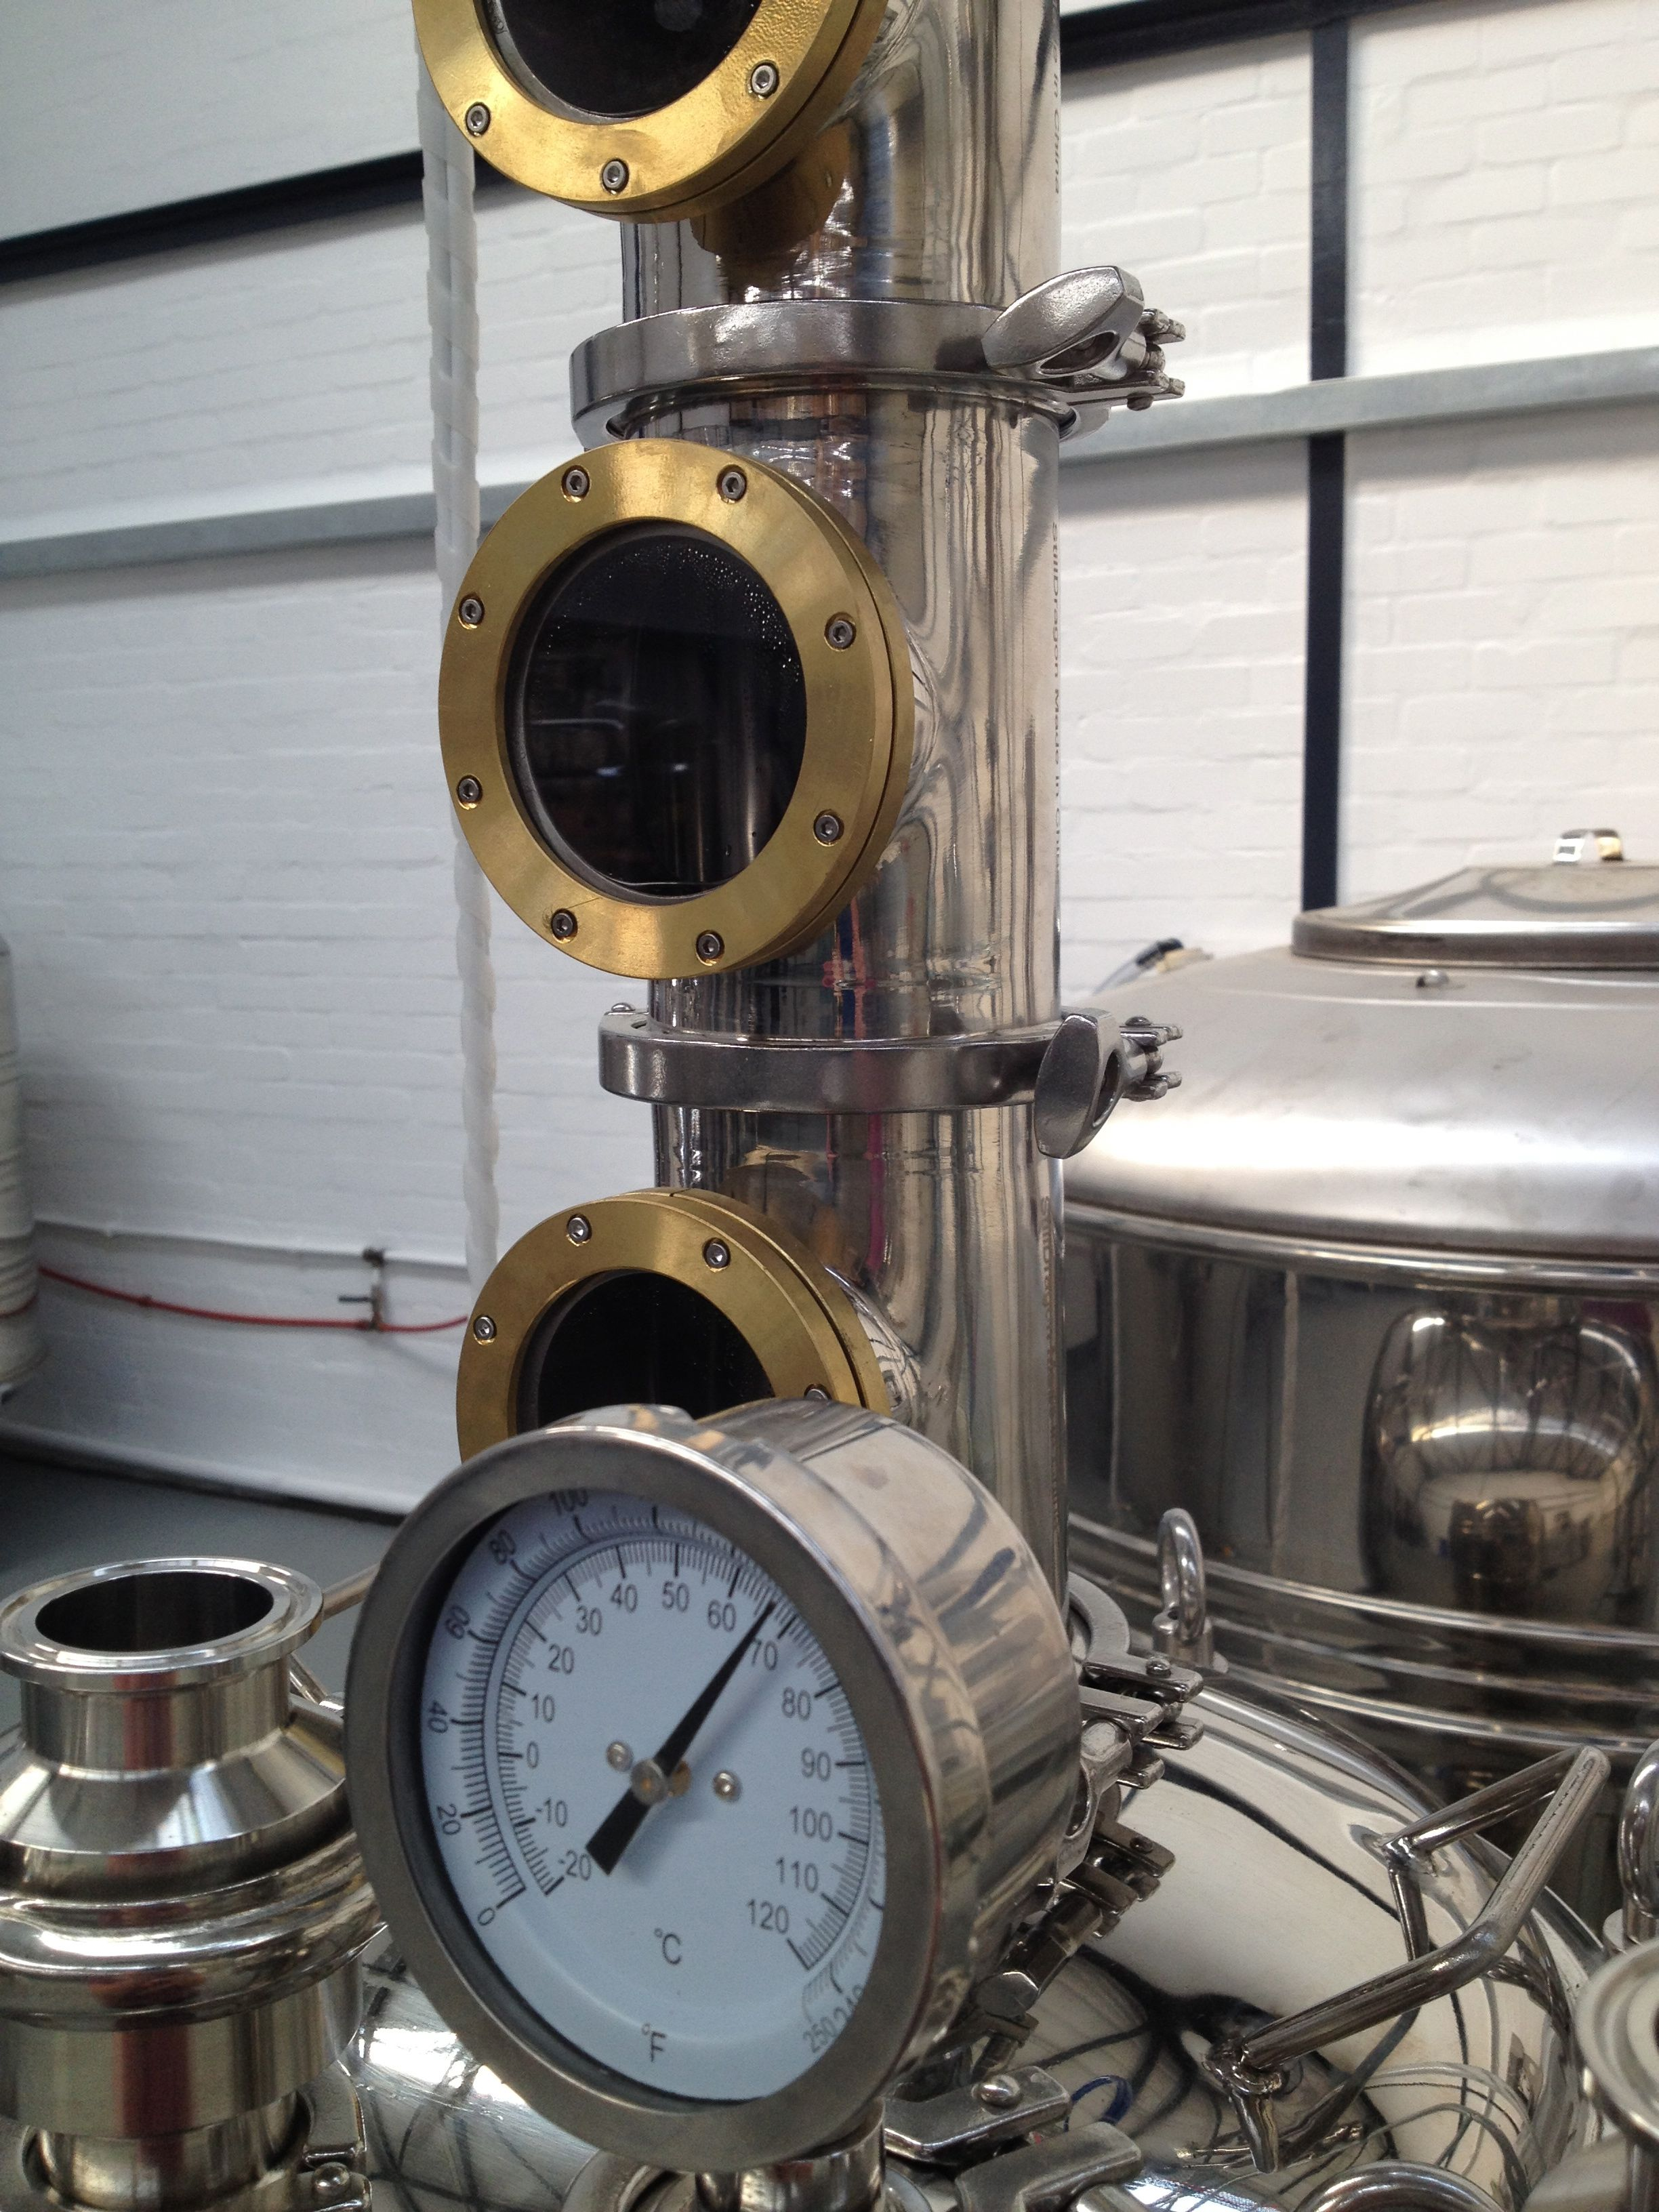 The ginning still, heating up